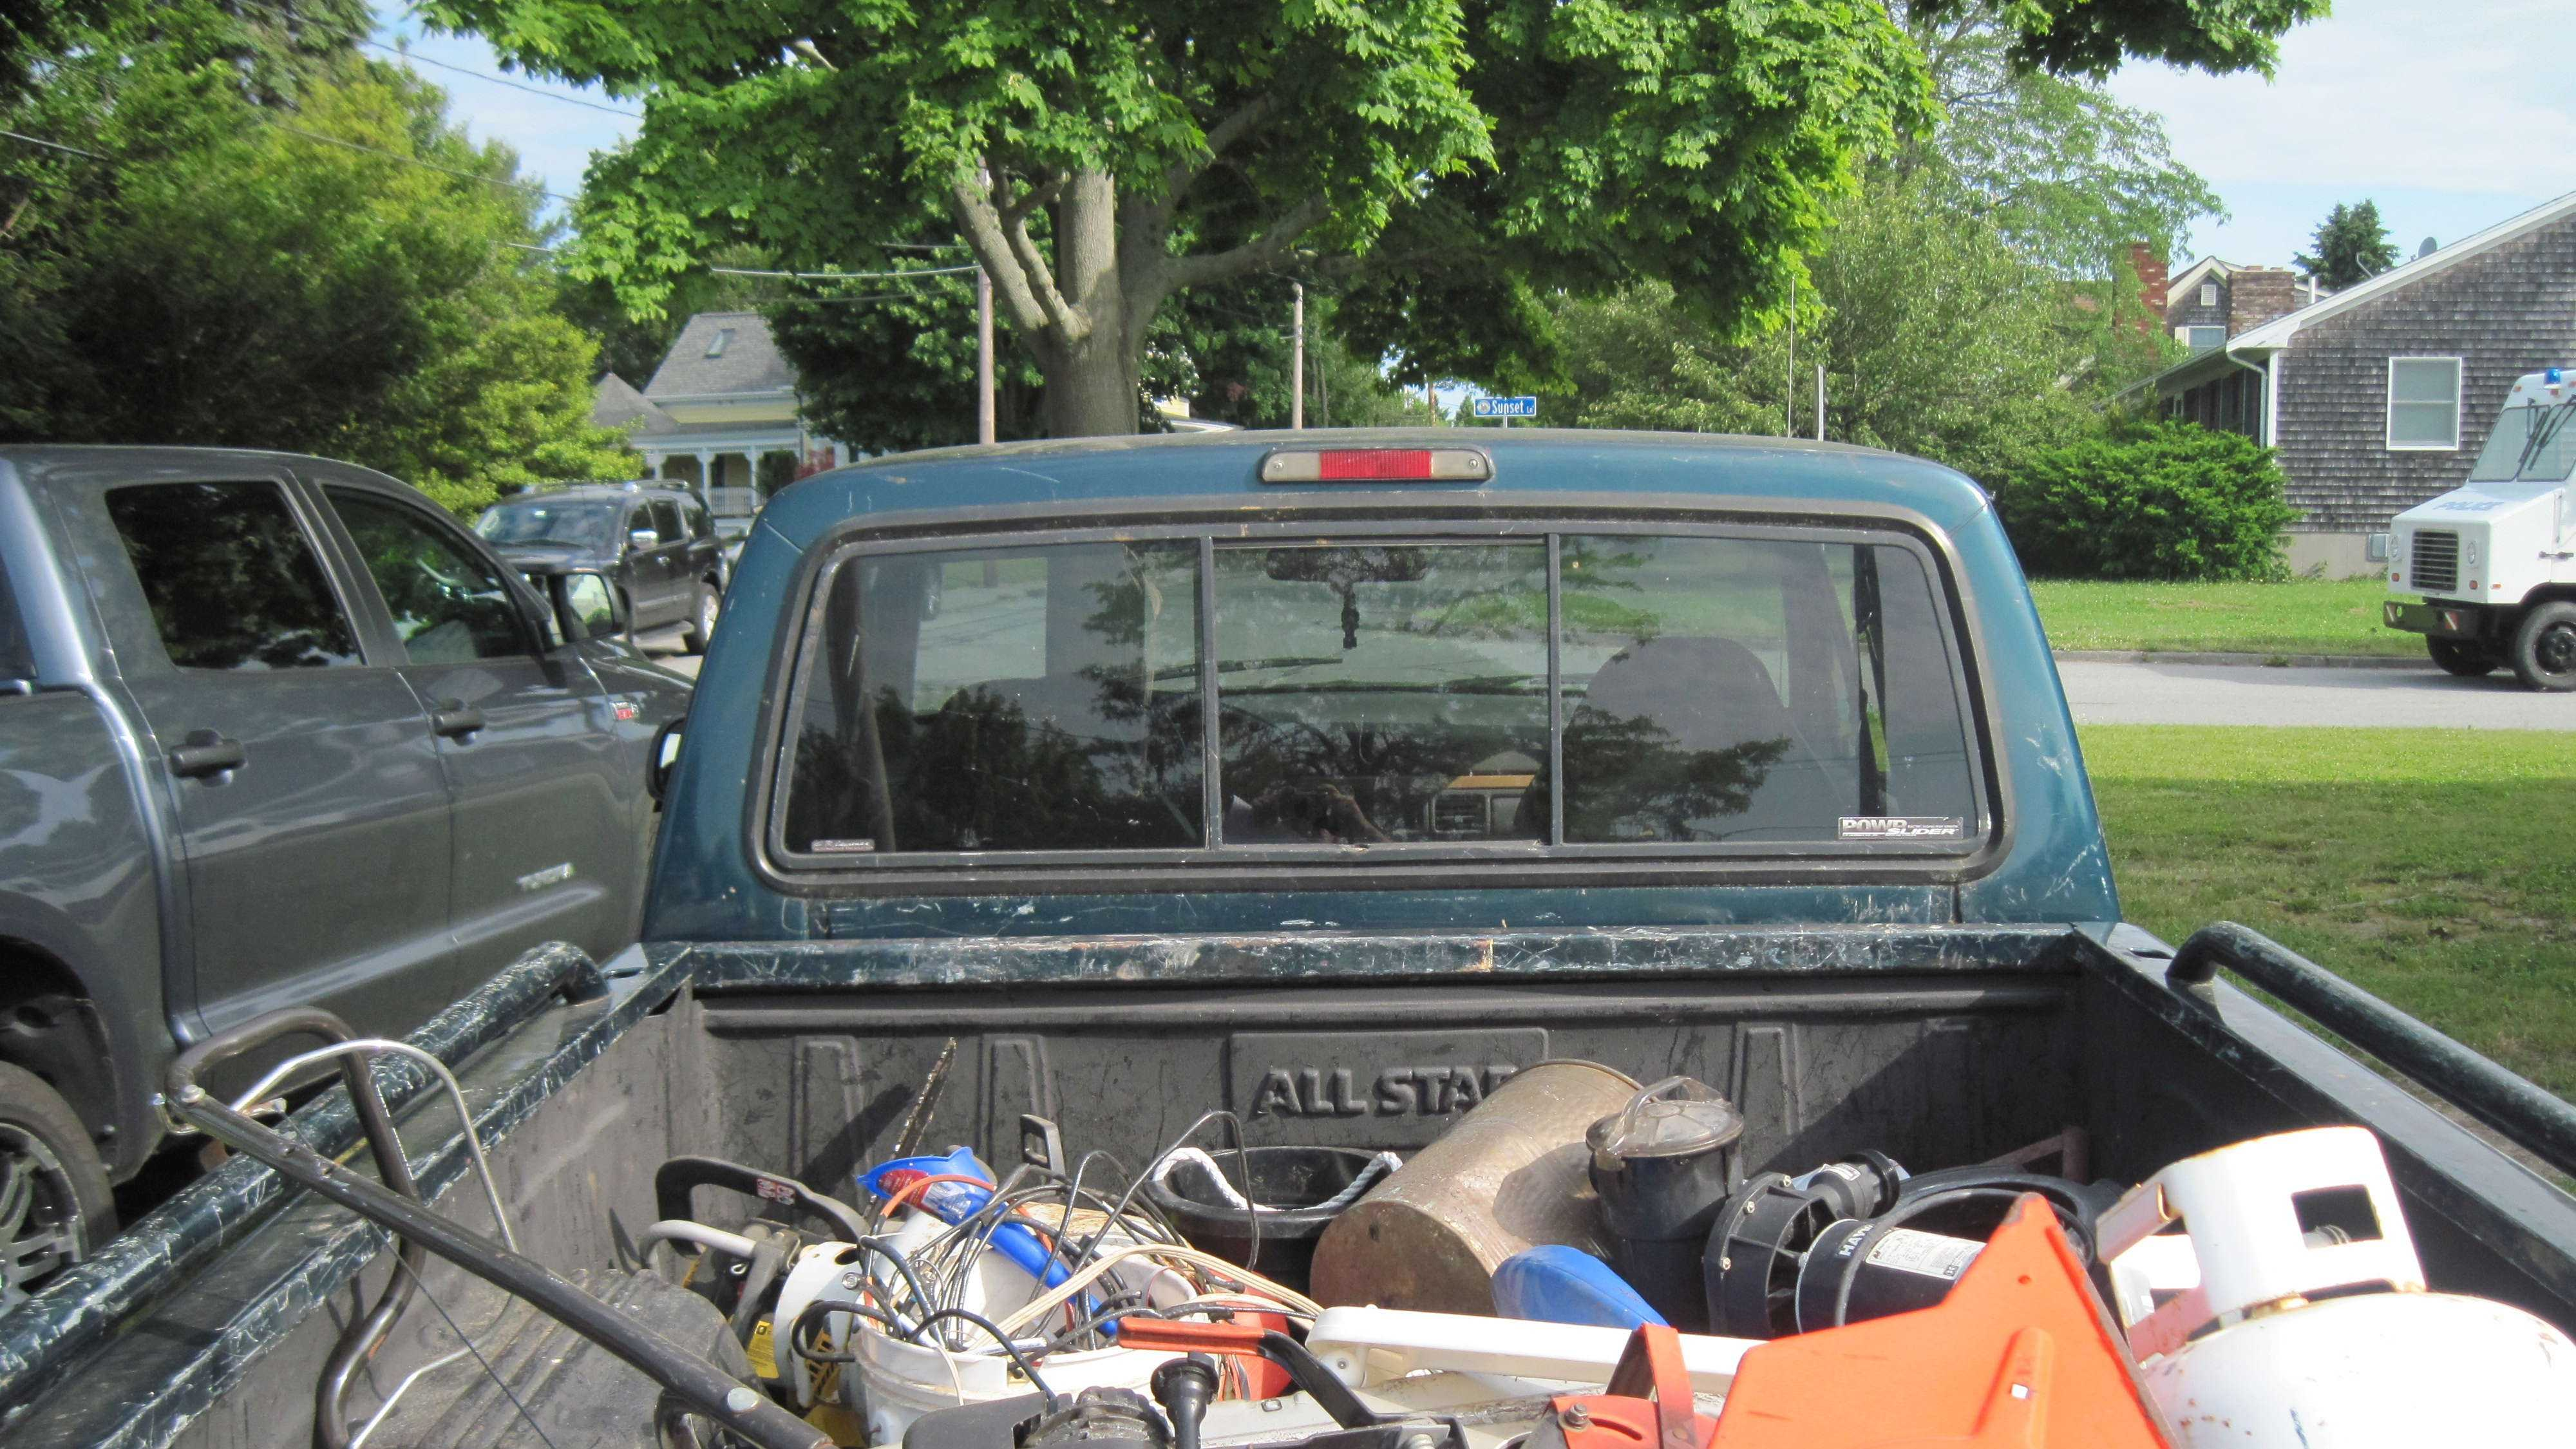 Police allege thieves posing as maintenance workers loaded up this truck with stolen goods.